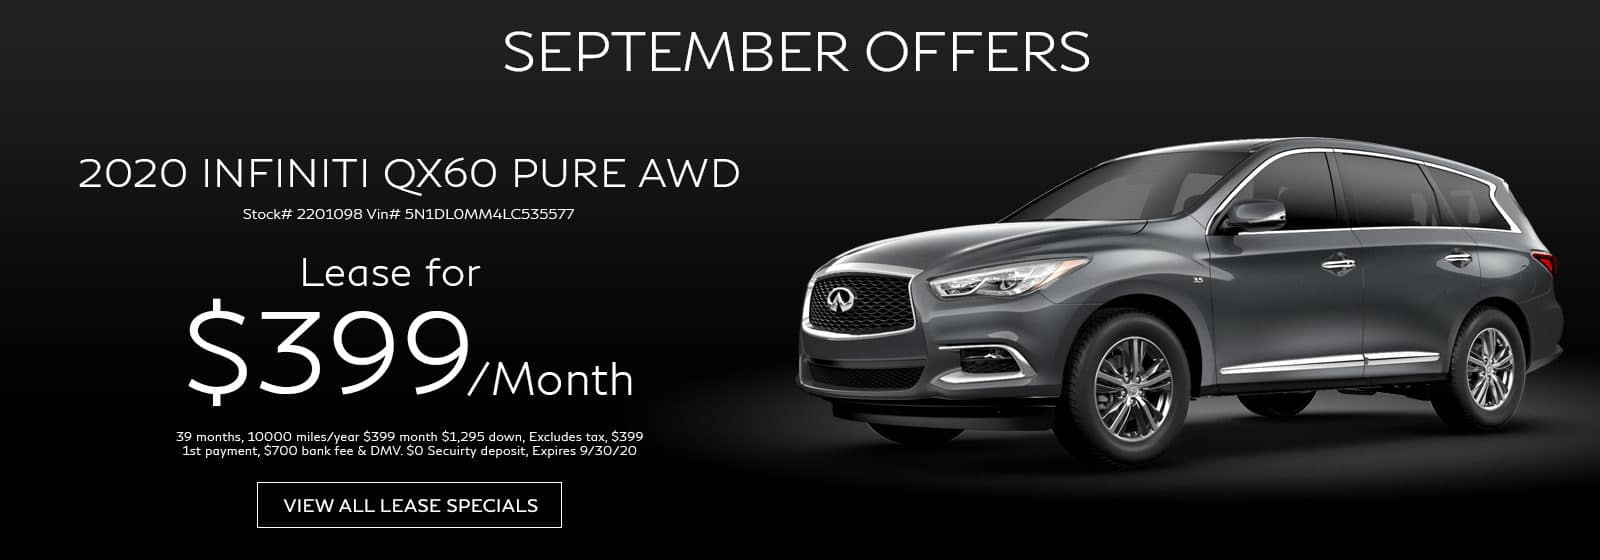 Homepage-Slider-INFINITI-September-Specials-QX60-Pure